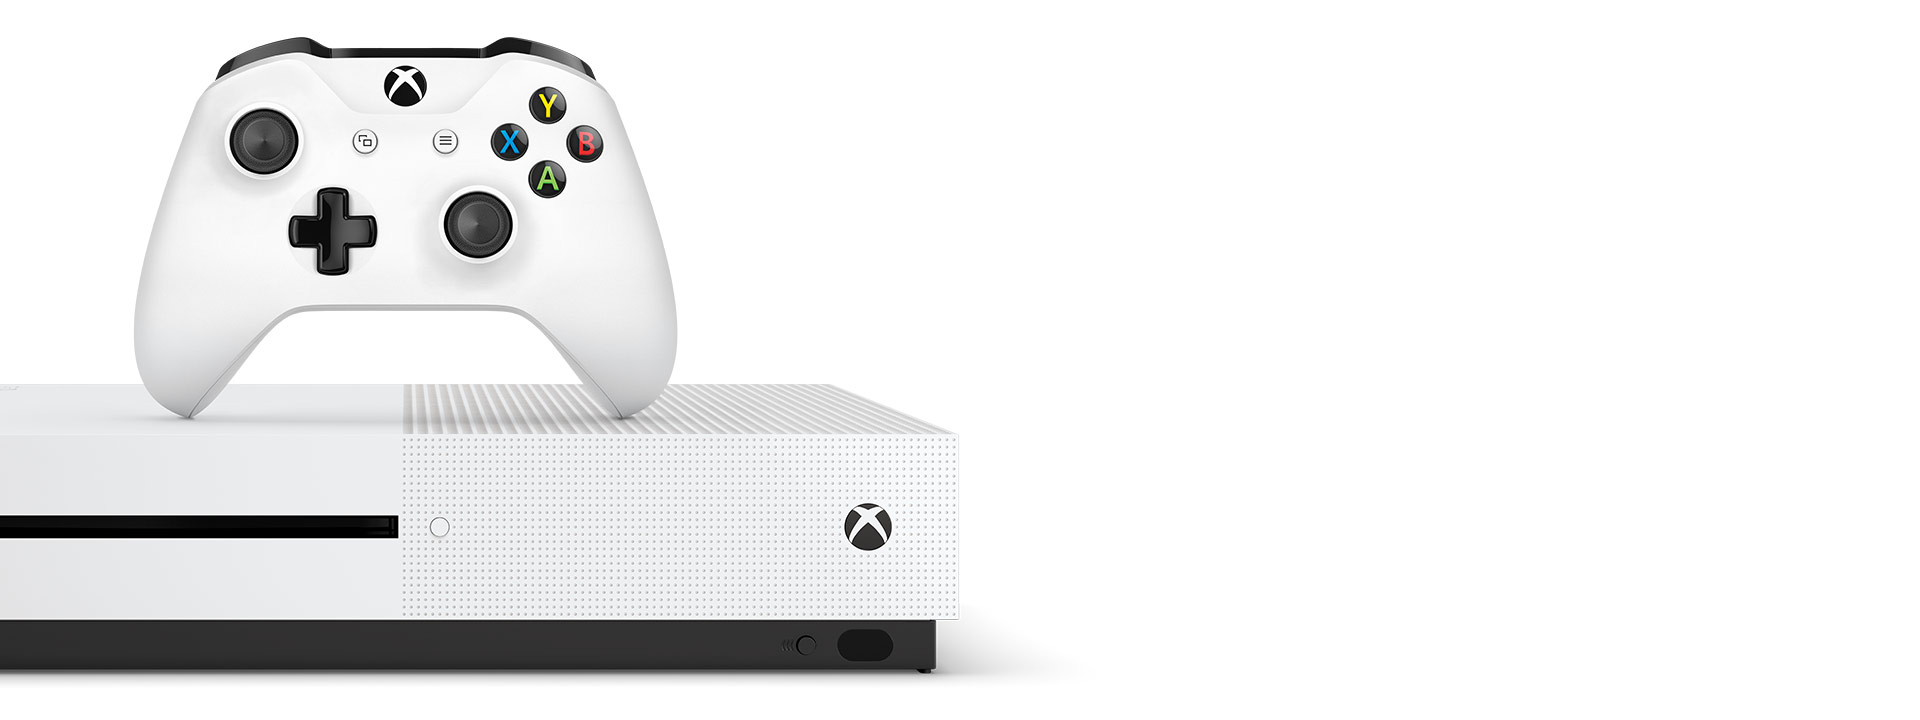 Front View of an Xbox One S and white Xbox One Wireless Controller